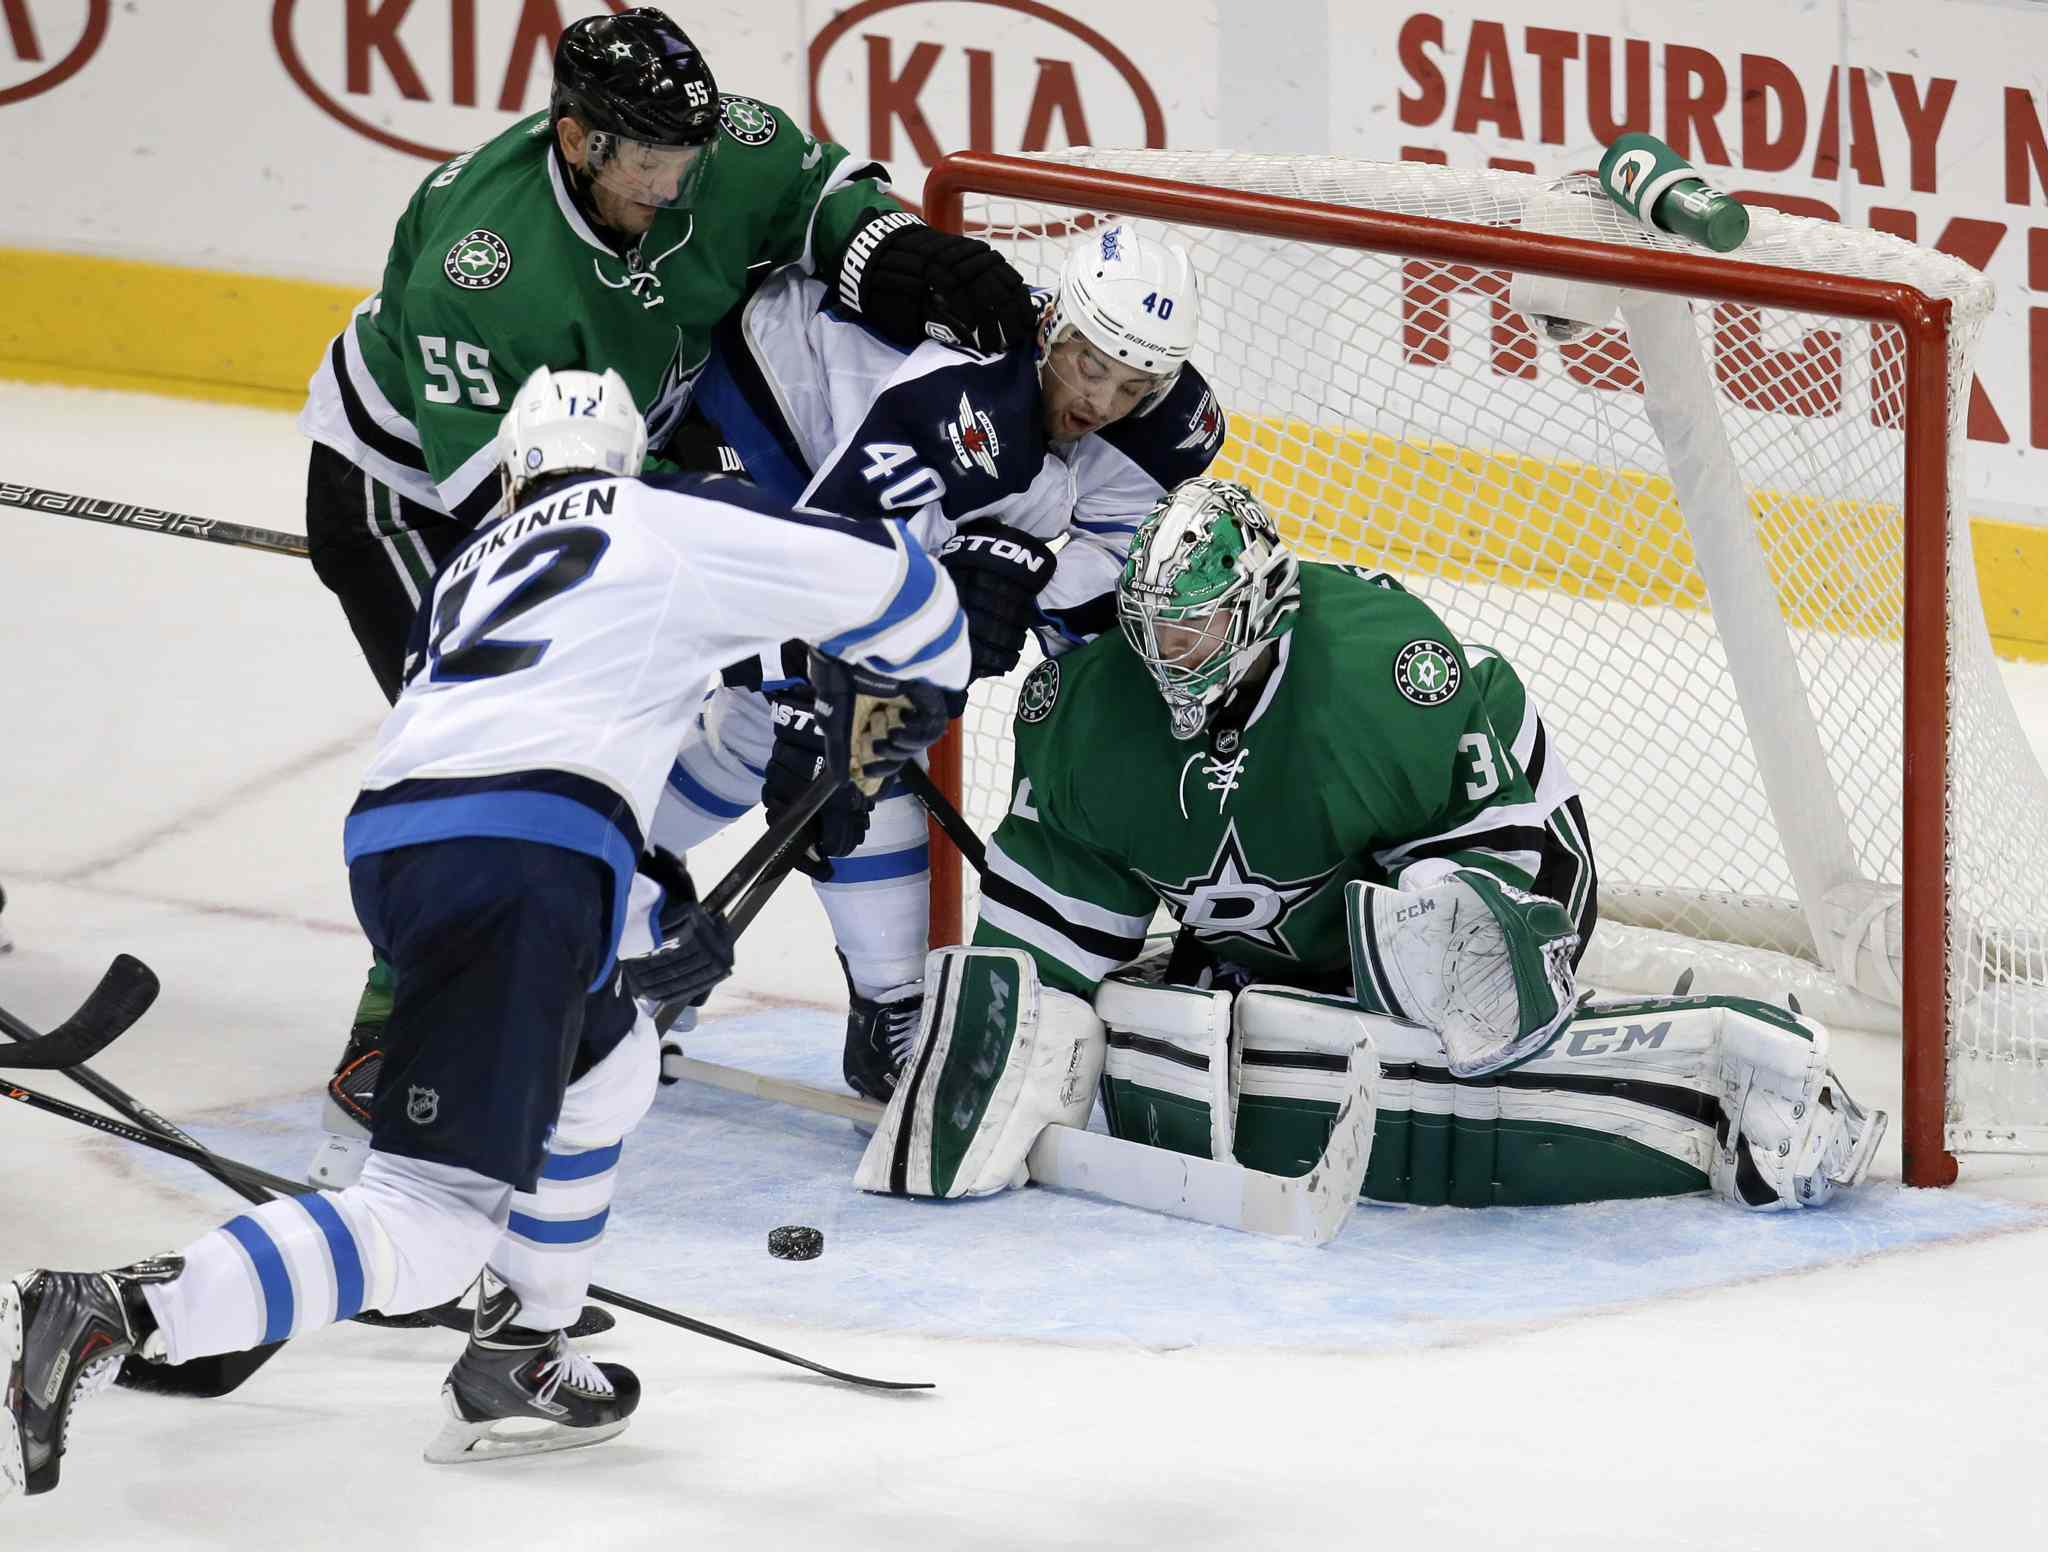 Olli Jokinen attempts a shot on a rebound against Dallas Stars goalie Kari Lehtonen as defenceman Sergei Gonchar grapples with Devin Setoguchi in front of the net during overtime.